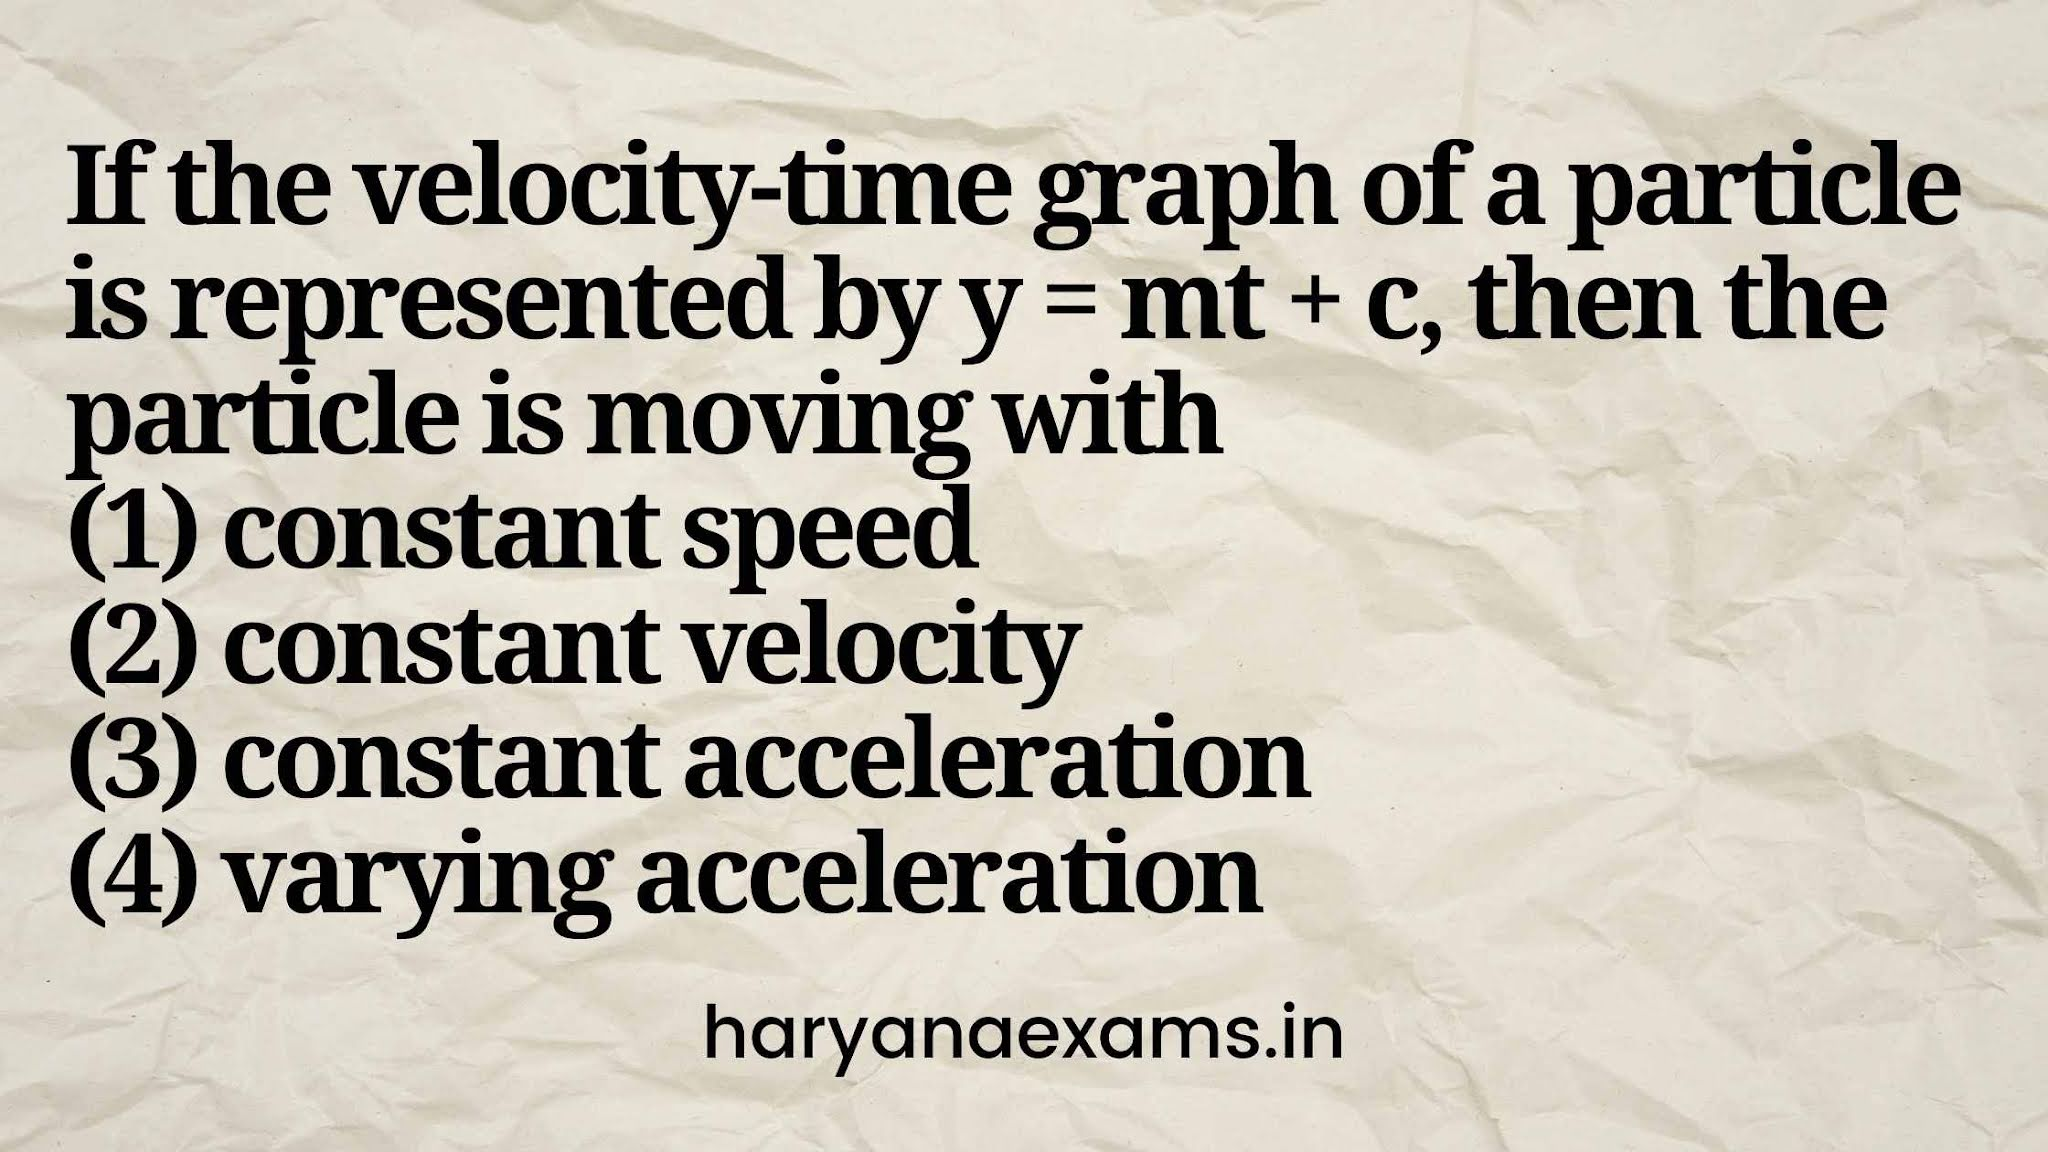 If the velocity-time graph of a particle is represented by y = mt + c, then the particle is moving with   (1) constant speed   (2) constant velocity   (3) constant acceleration   (4) varying acceleration